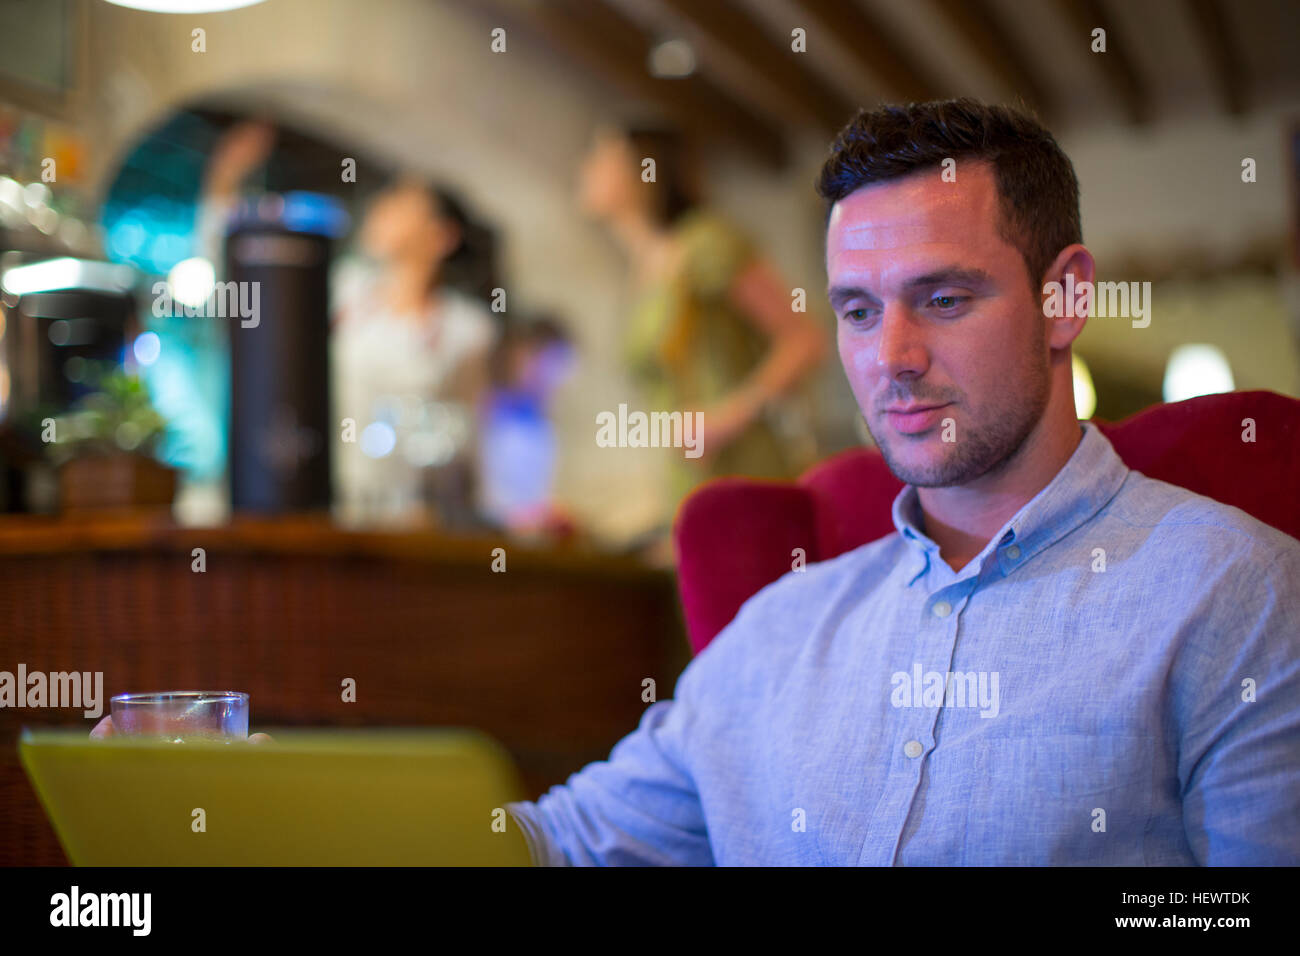 Man using laptop in restaurant - Stock Image